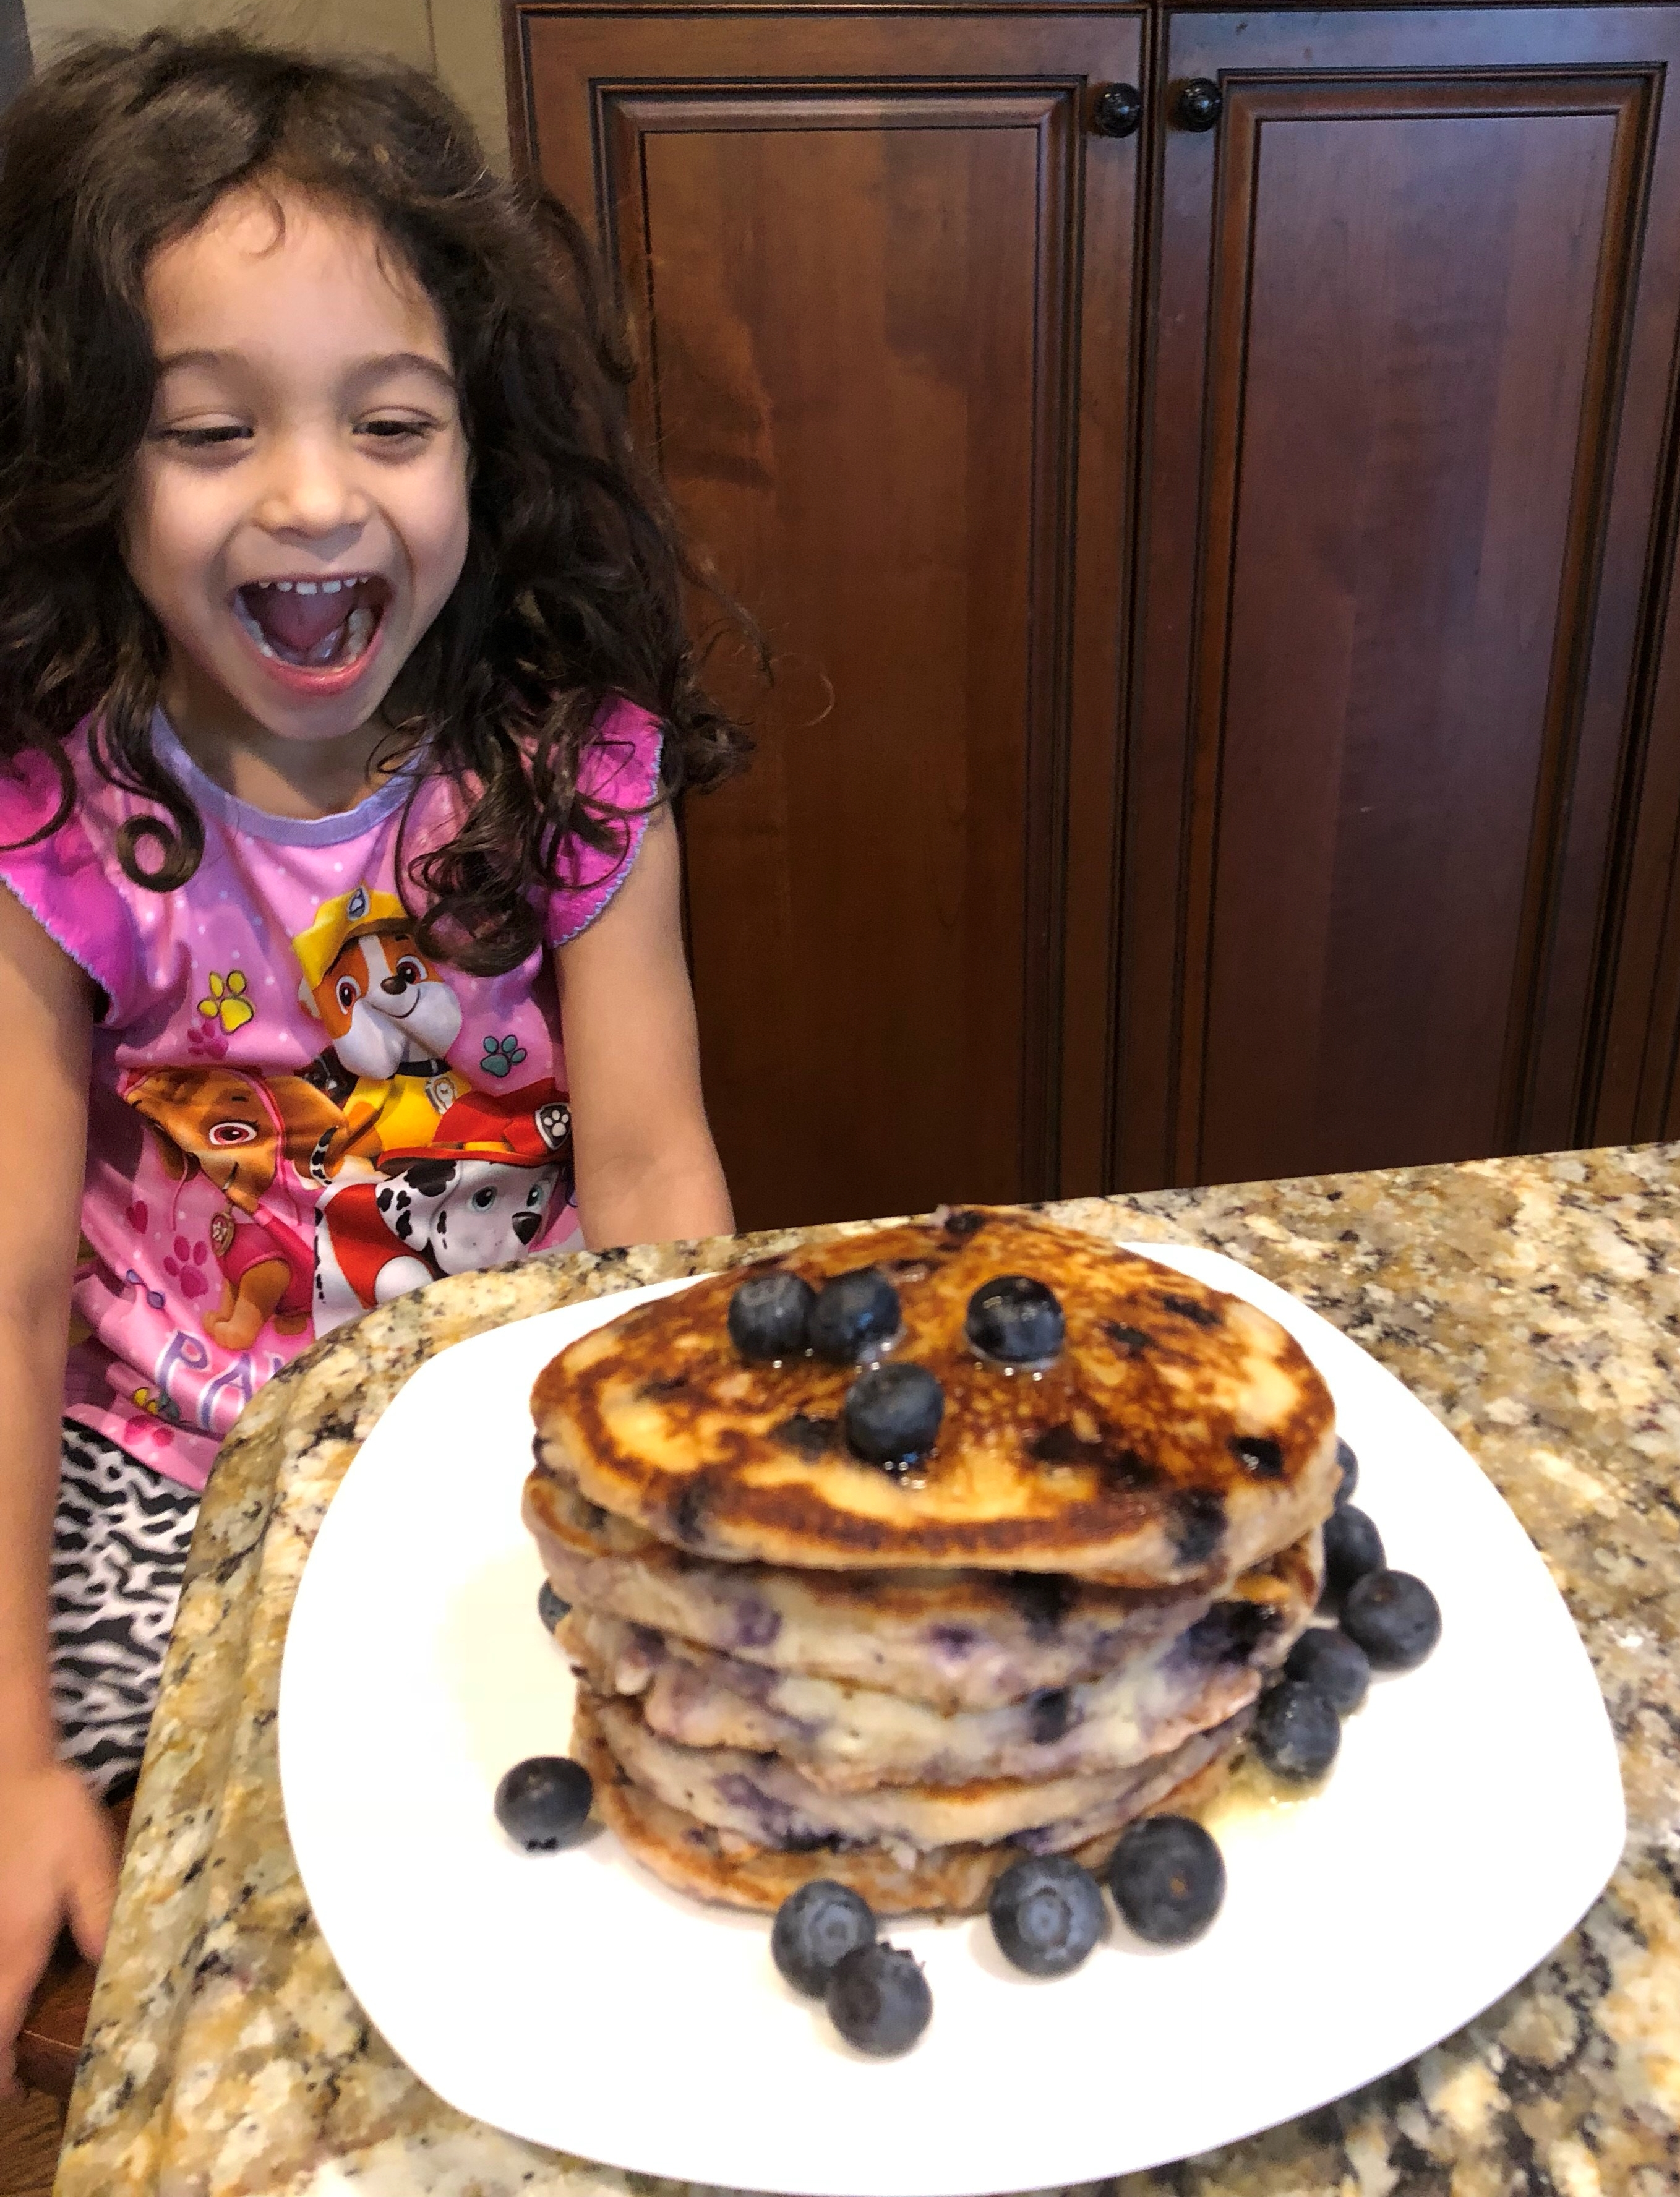 Excited about pancakes